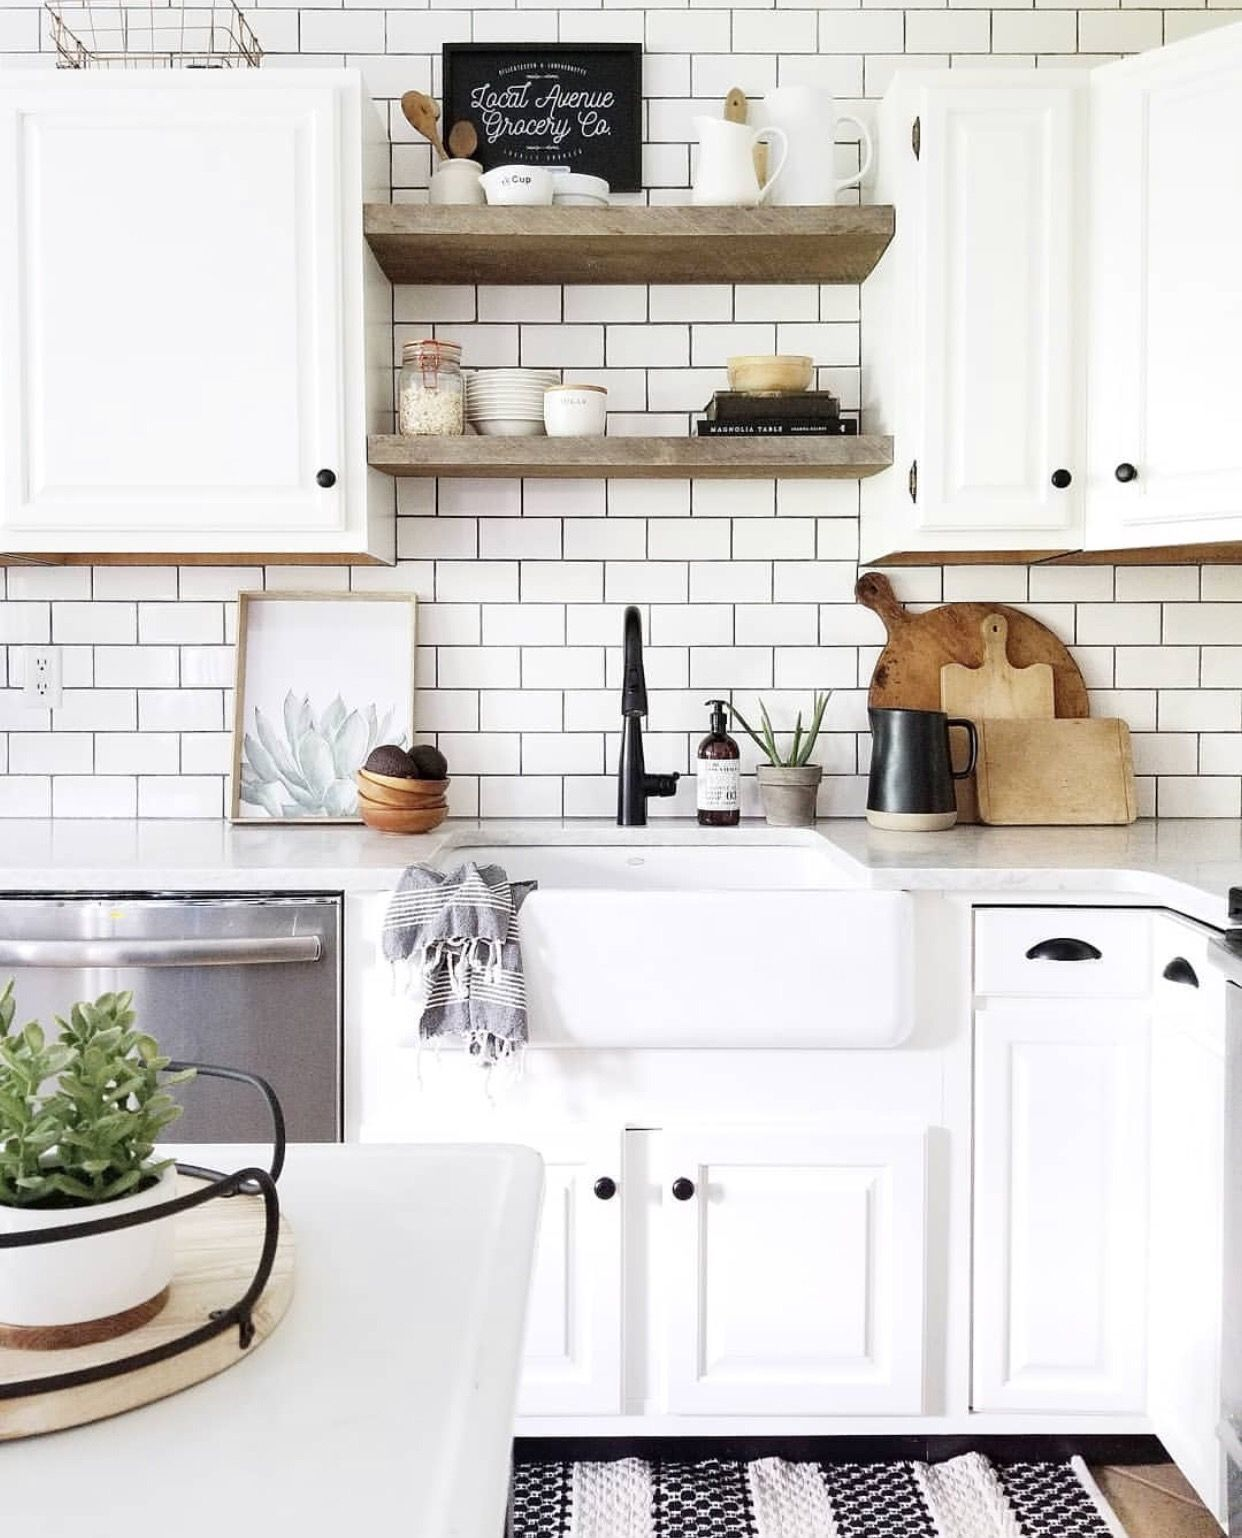 40 Cute Black And White Wood Design Ideas For Kitchen Farmhouse Chic Kitchen Dream Kitchen White White Subway Tile Kitchen